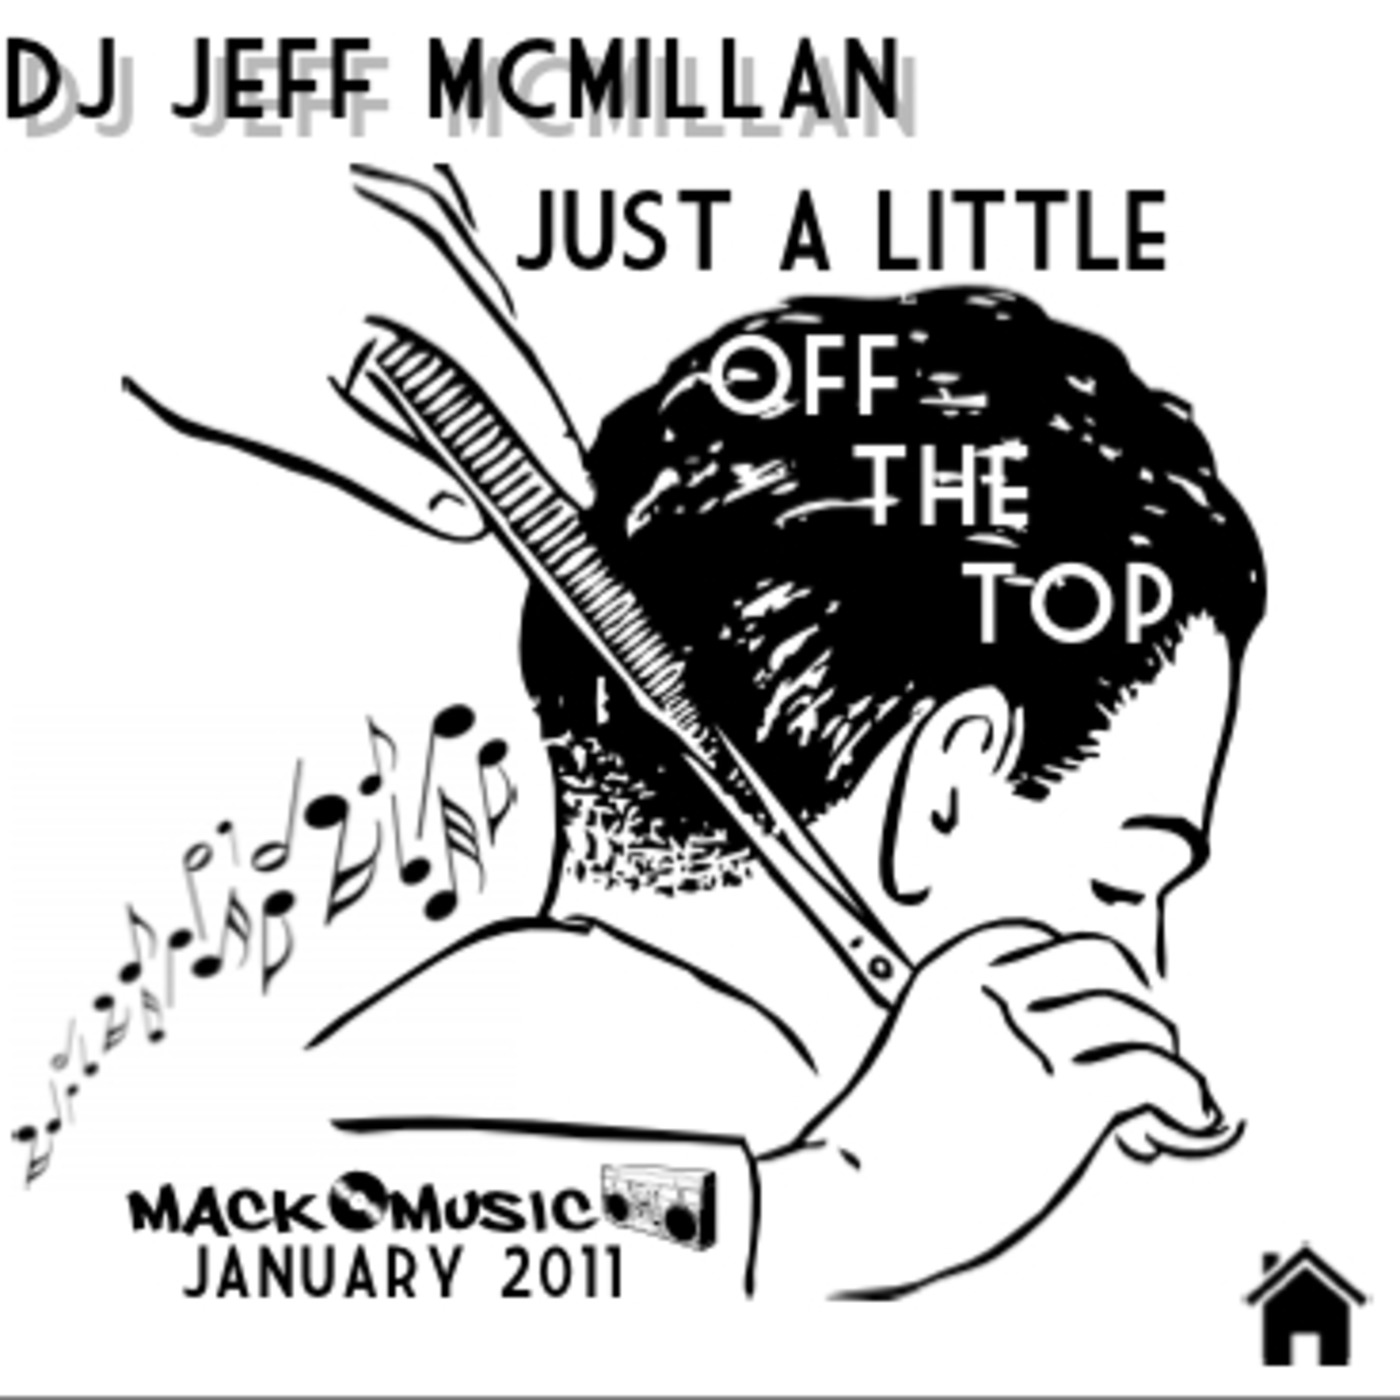 A Little Off The Top Jeff McMillan's podcast